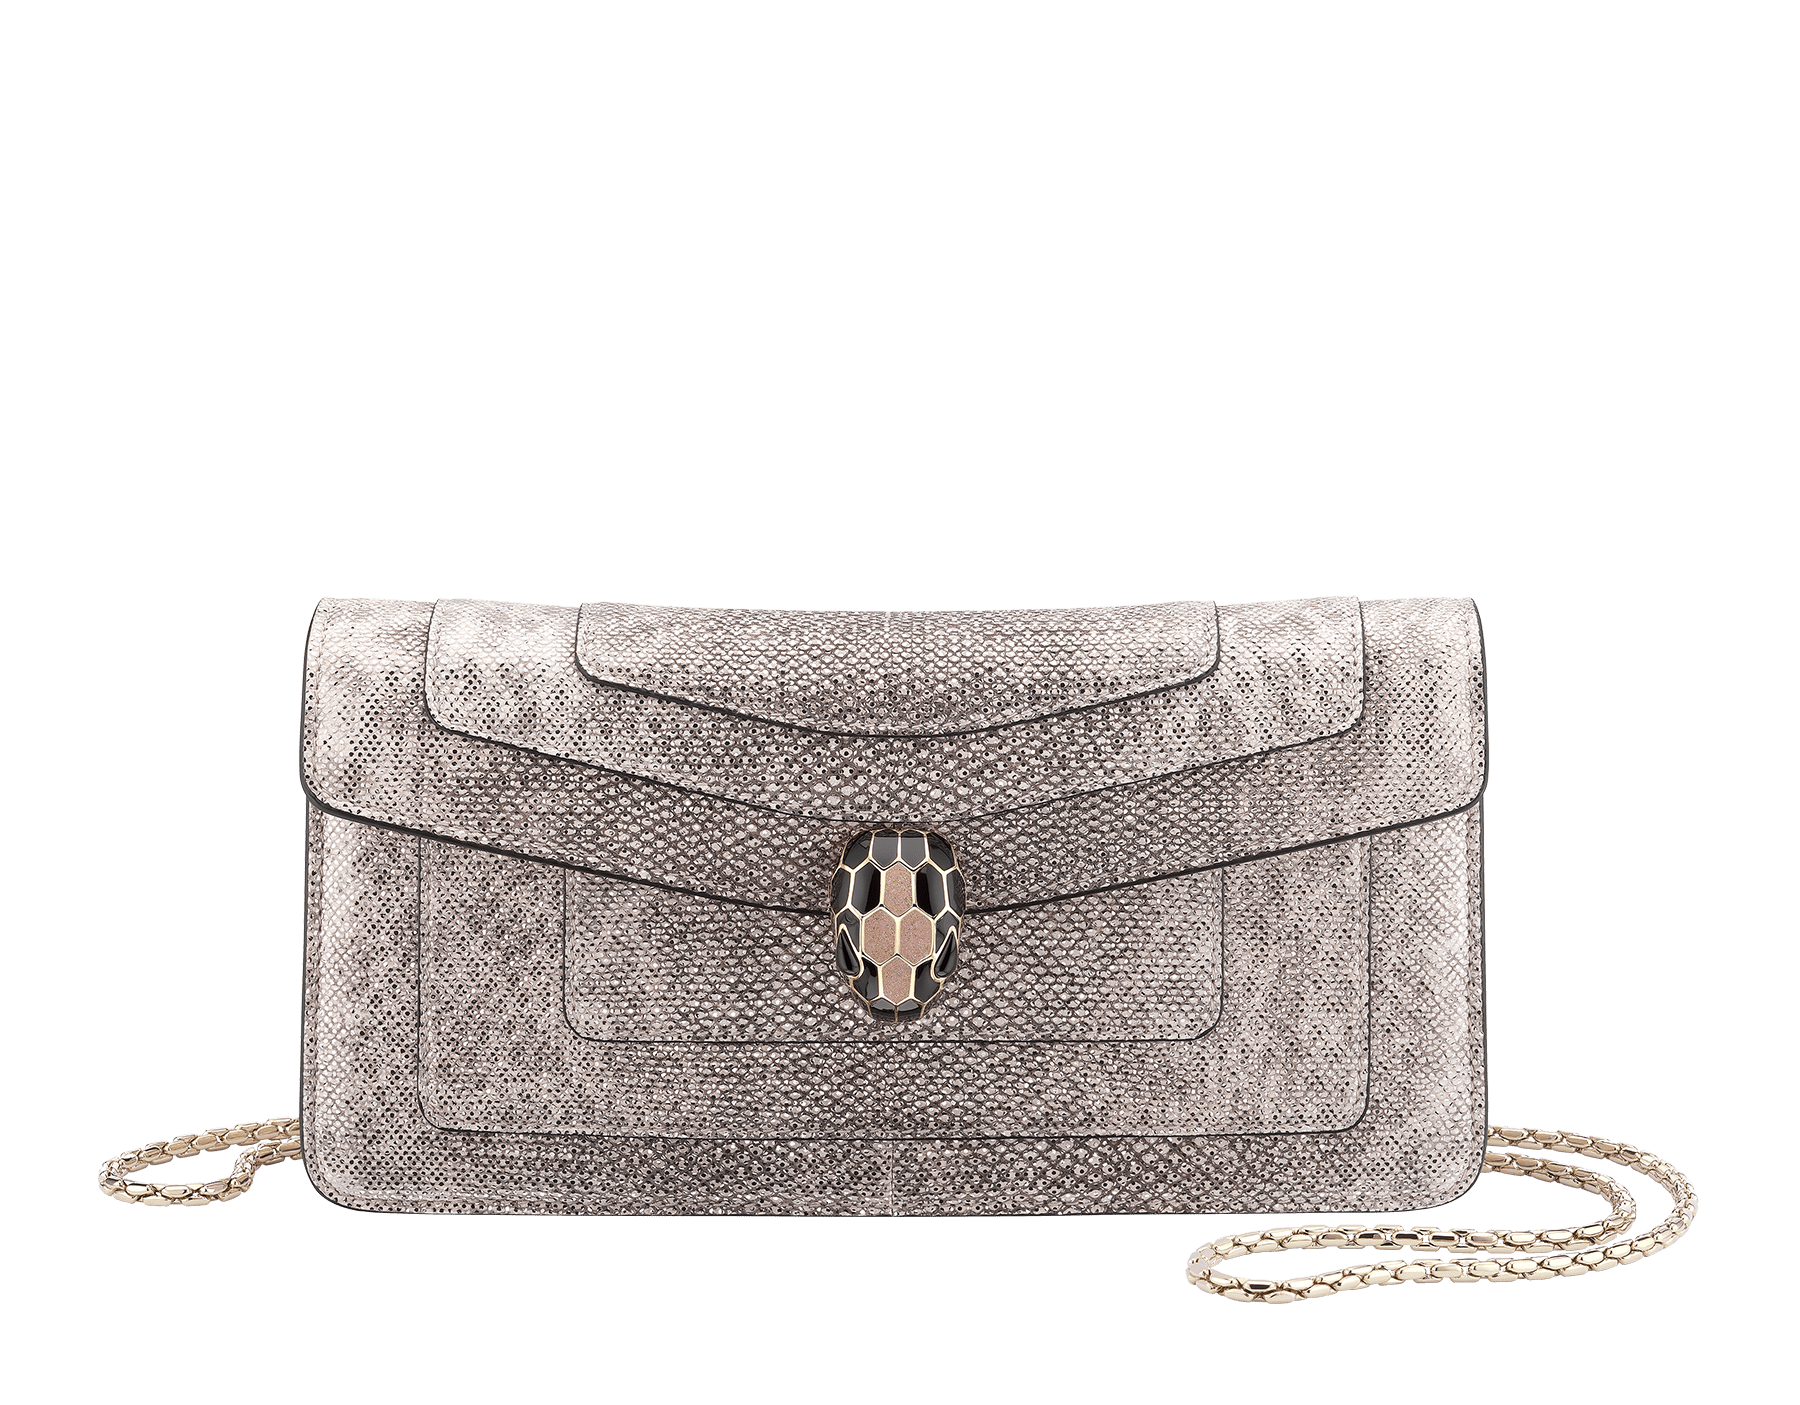 """Serpenti Forever"" shoulder bag in crystal rose metallic karung skin. Iconic snakehead closure in light gold plated brass enriched with black and glitter bronze enamel and black onyx eyes 287089 image 1"